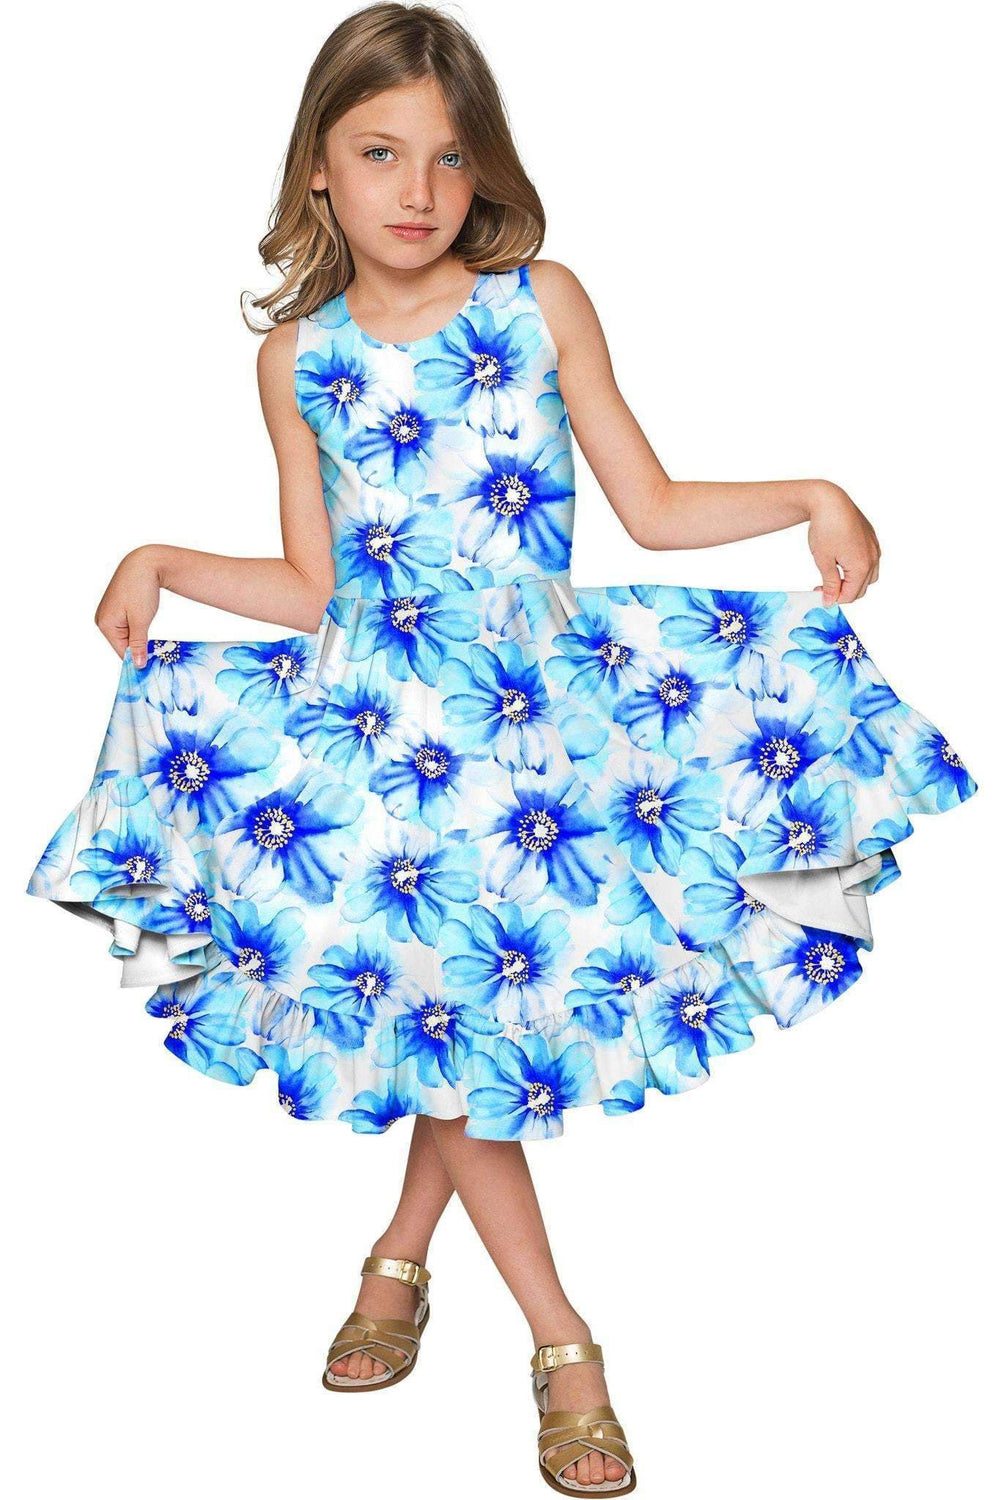 Shop Girl\'s Chic Clothing: Dresses, Tops, Skirts, Pants & Accessories